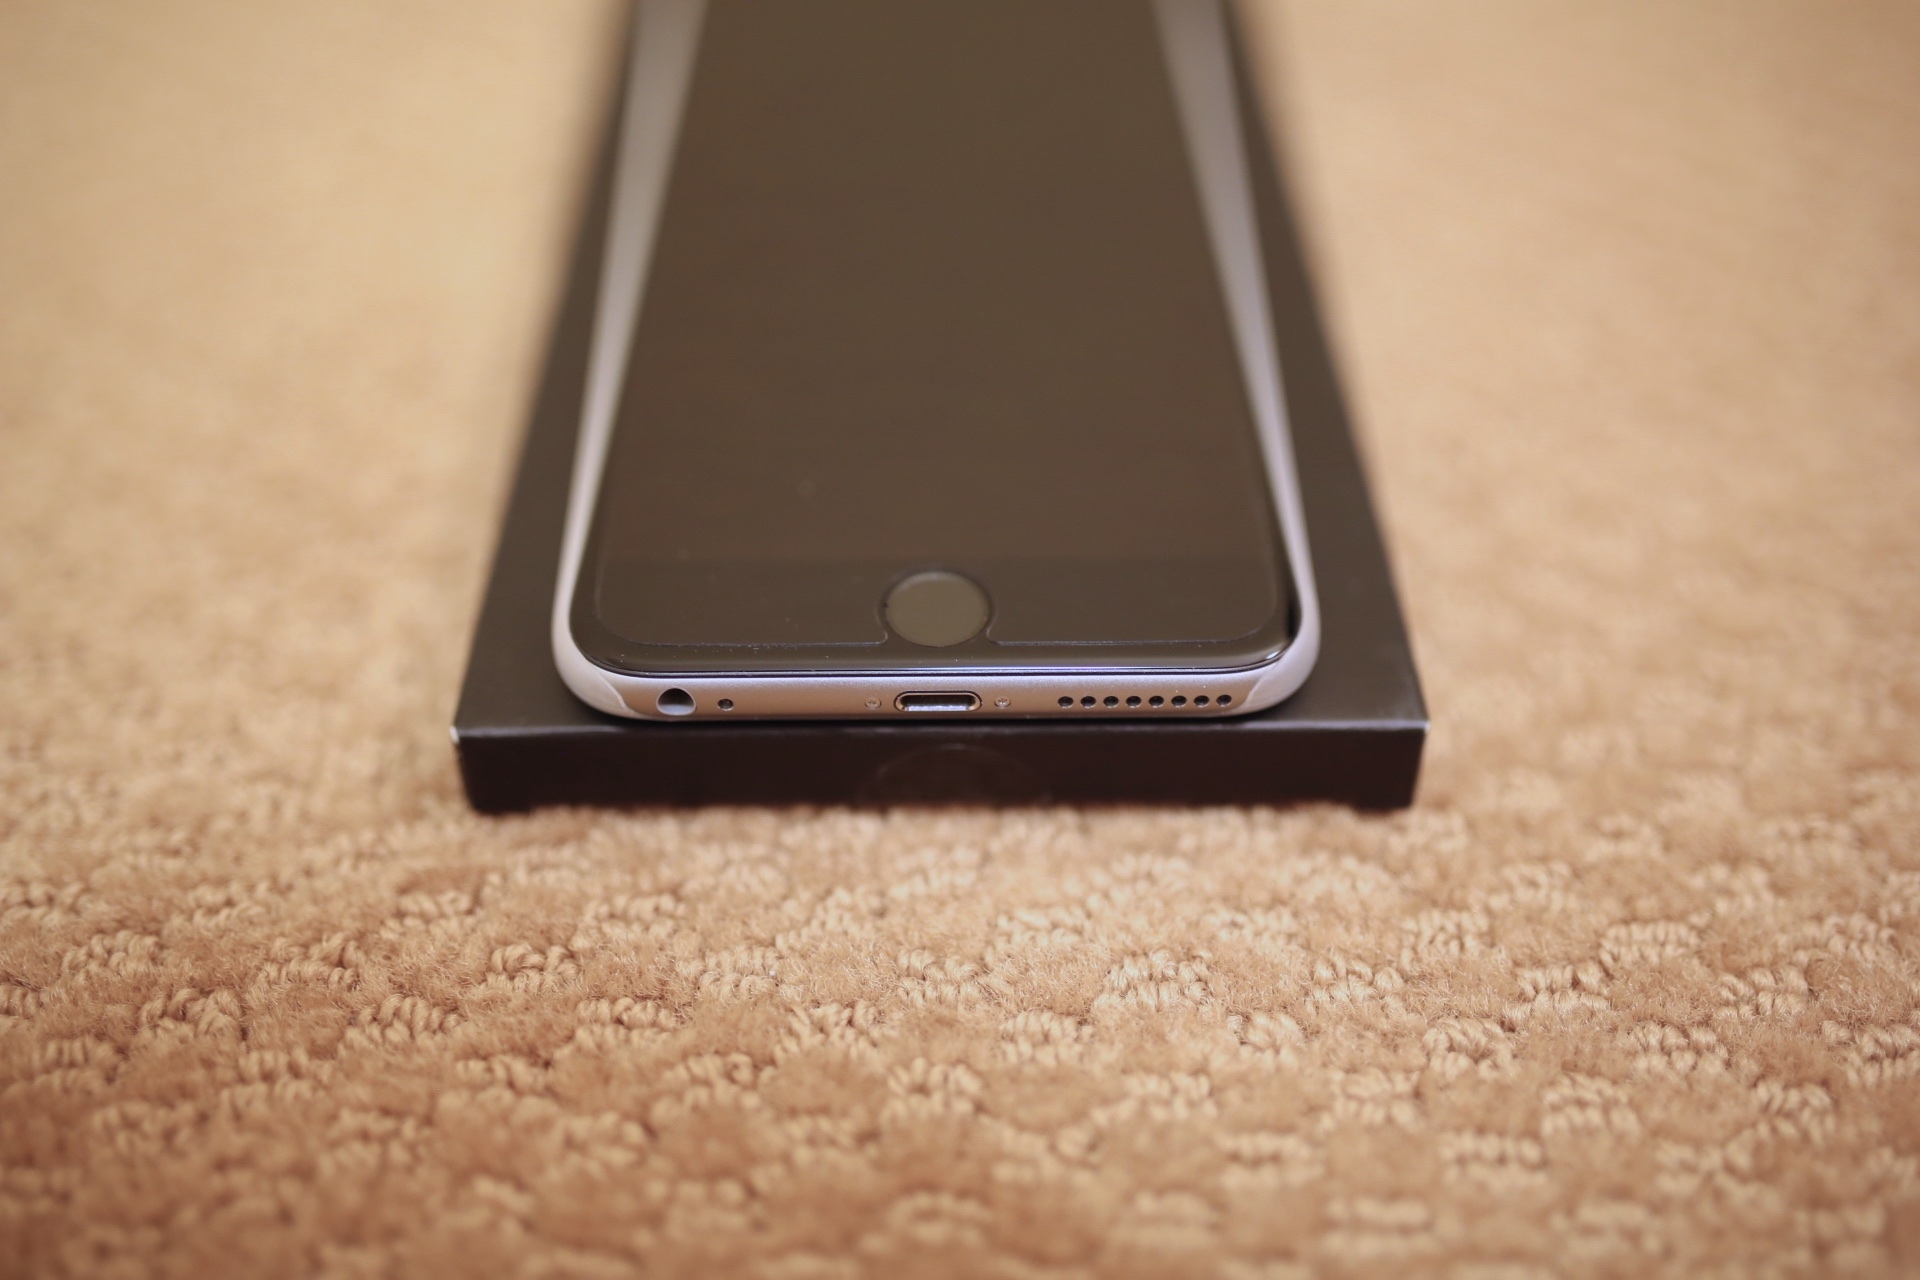 new product e08c6 ddee1 iPhone 6 - Caudabe Veil | Page 6 | MacRumors Forums